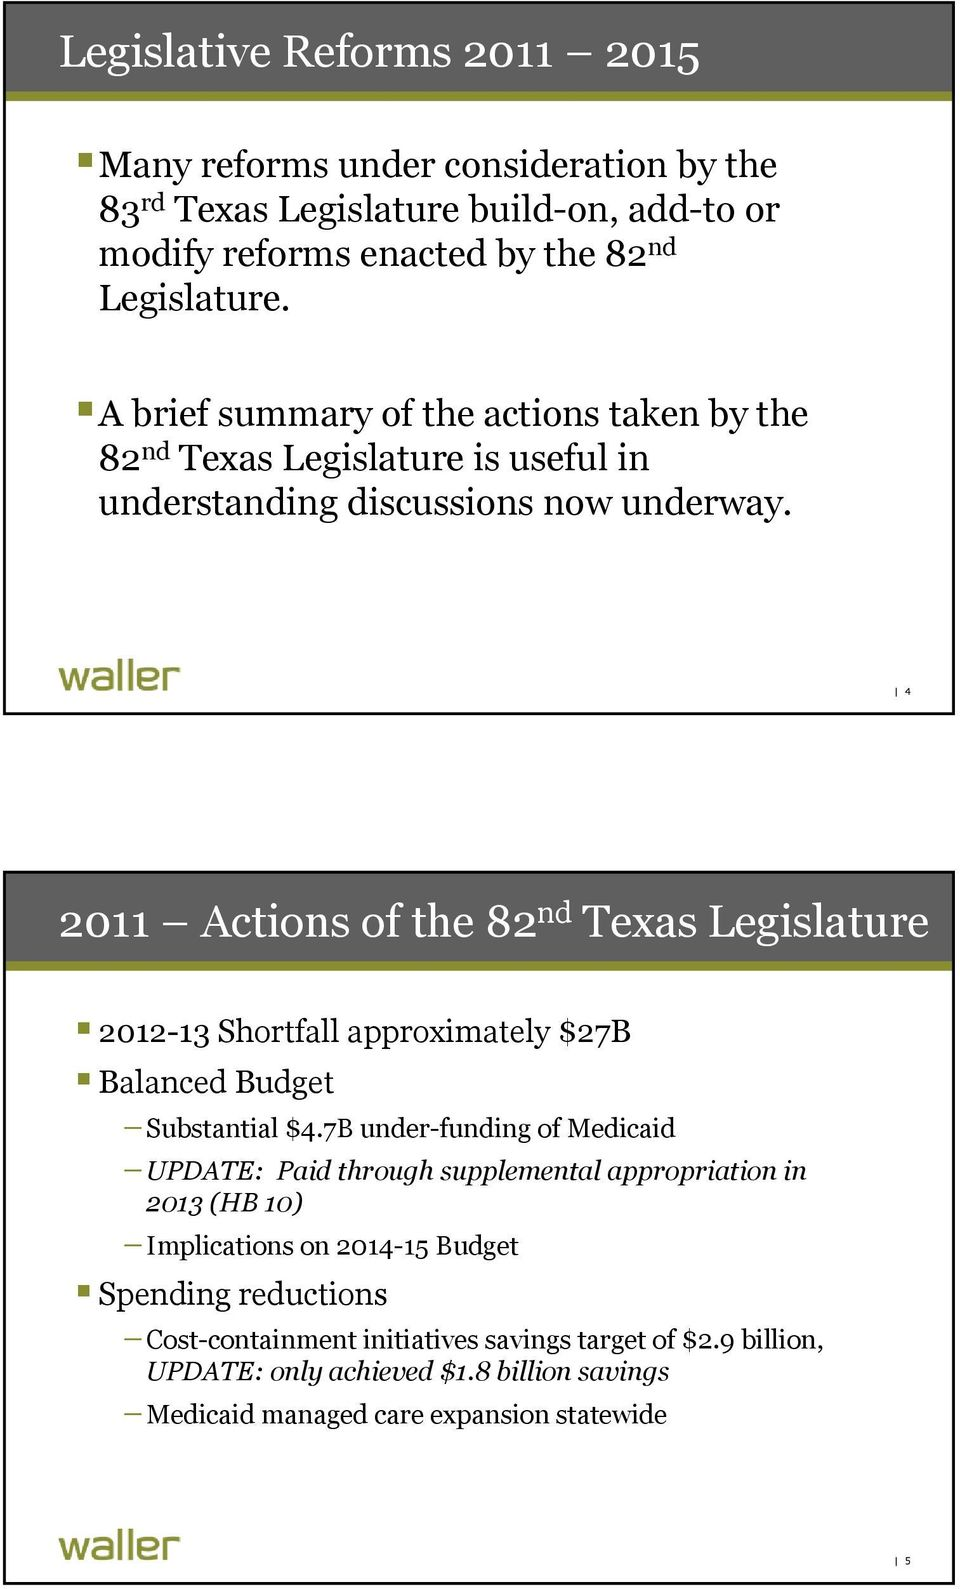 4 2011 Actions of the 82 nd Texas Legislature 2012-13 Shortfall approximately $27B Balanced Budget Substantial $4.